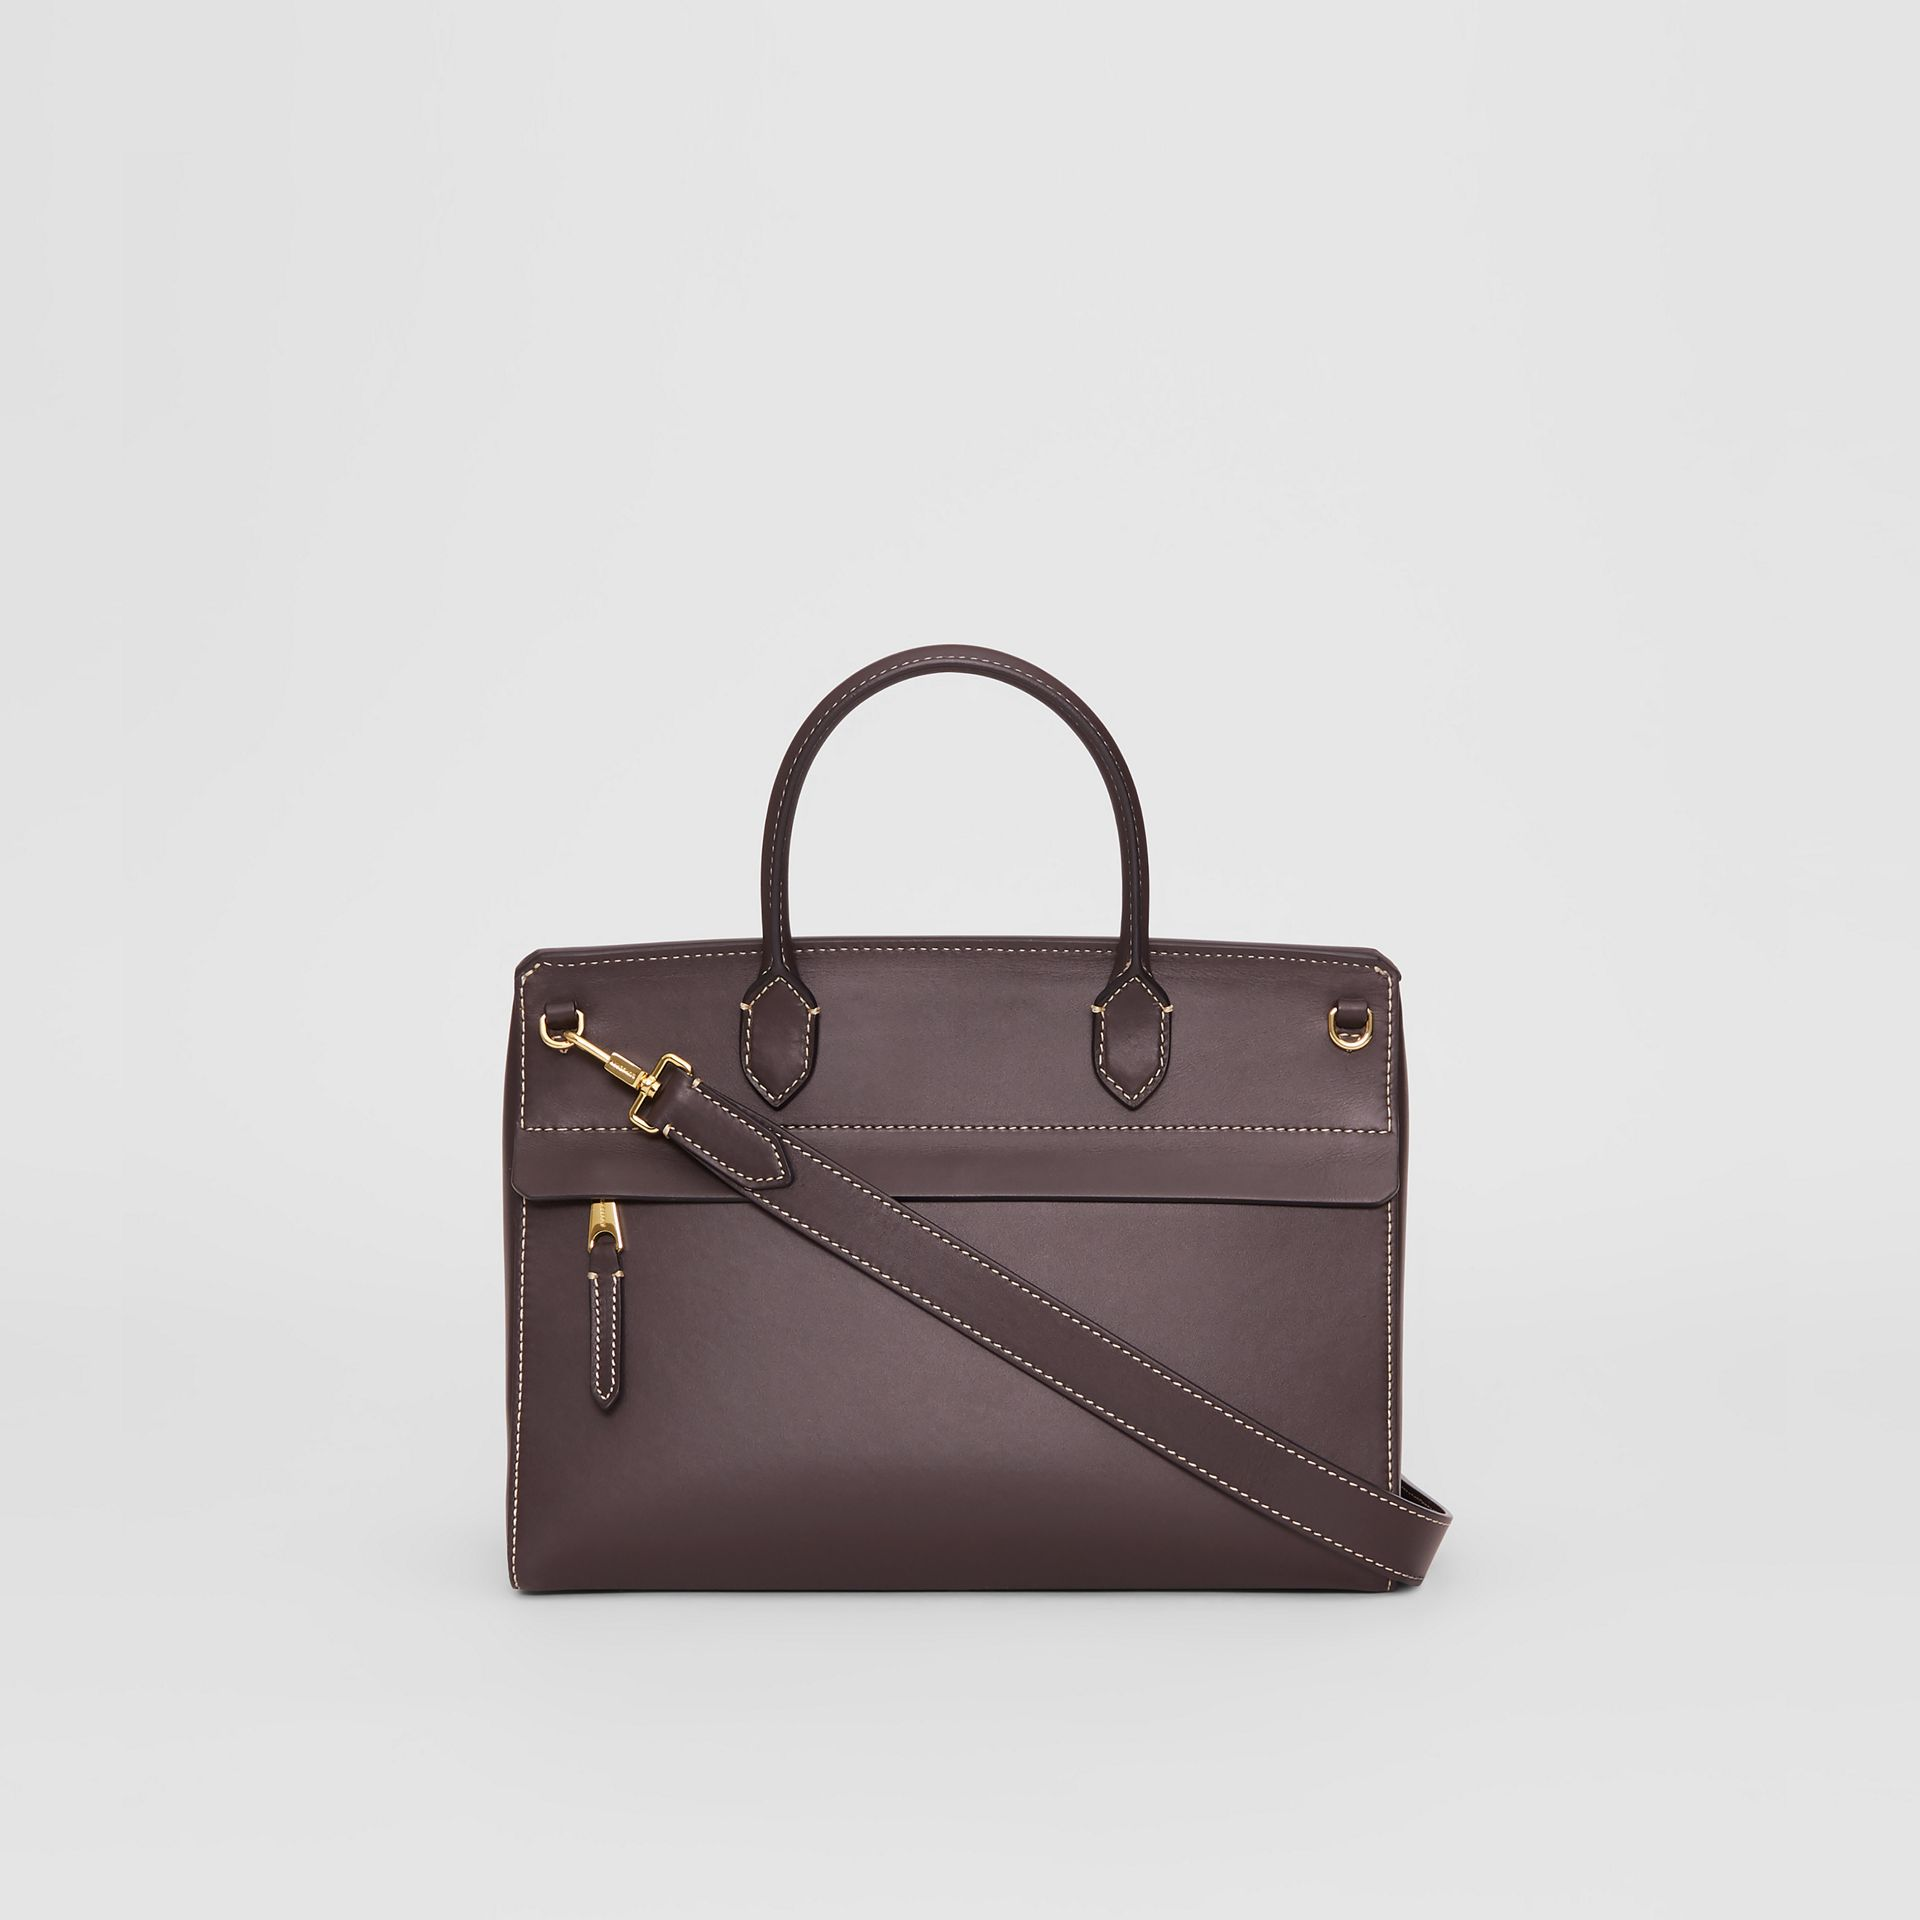 Small Leather Elizabeth Bag in Coffee - Women | Burberry Canada - gallery image 7